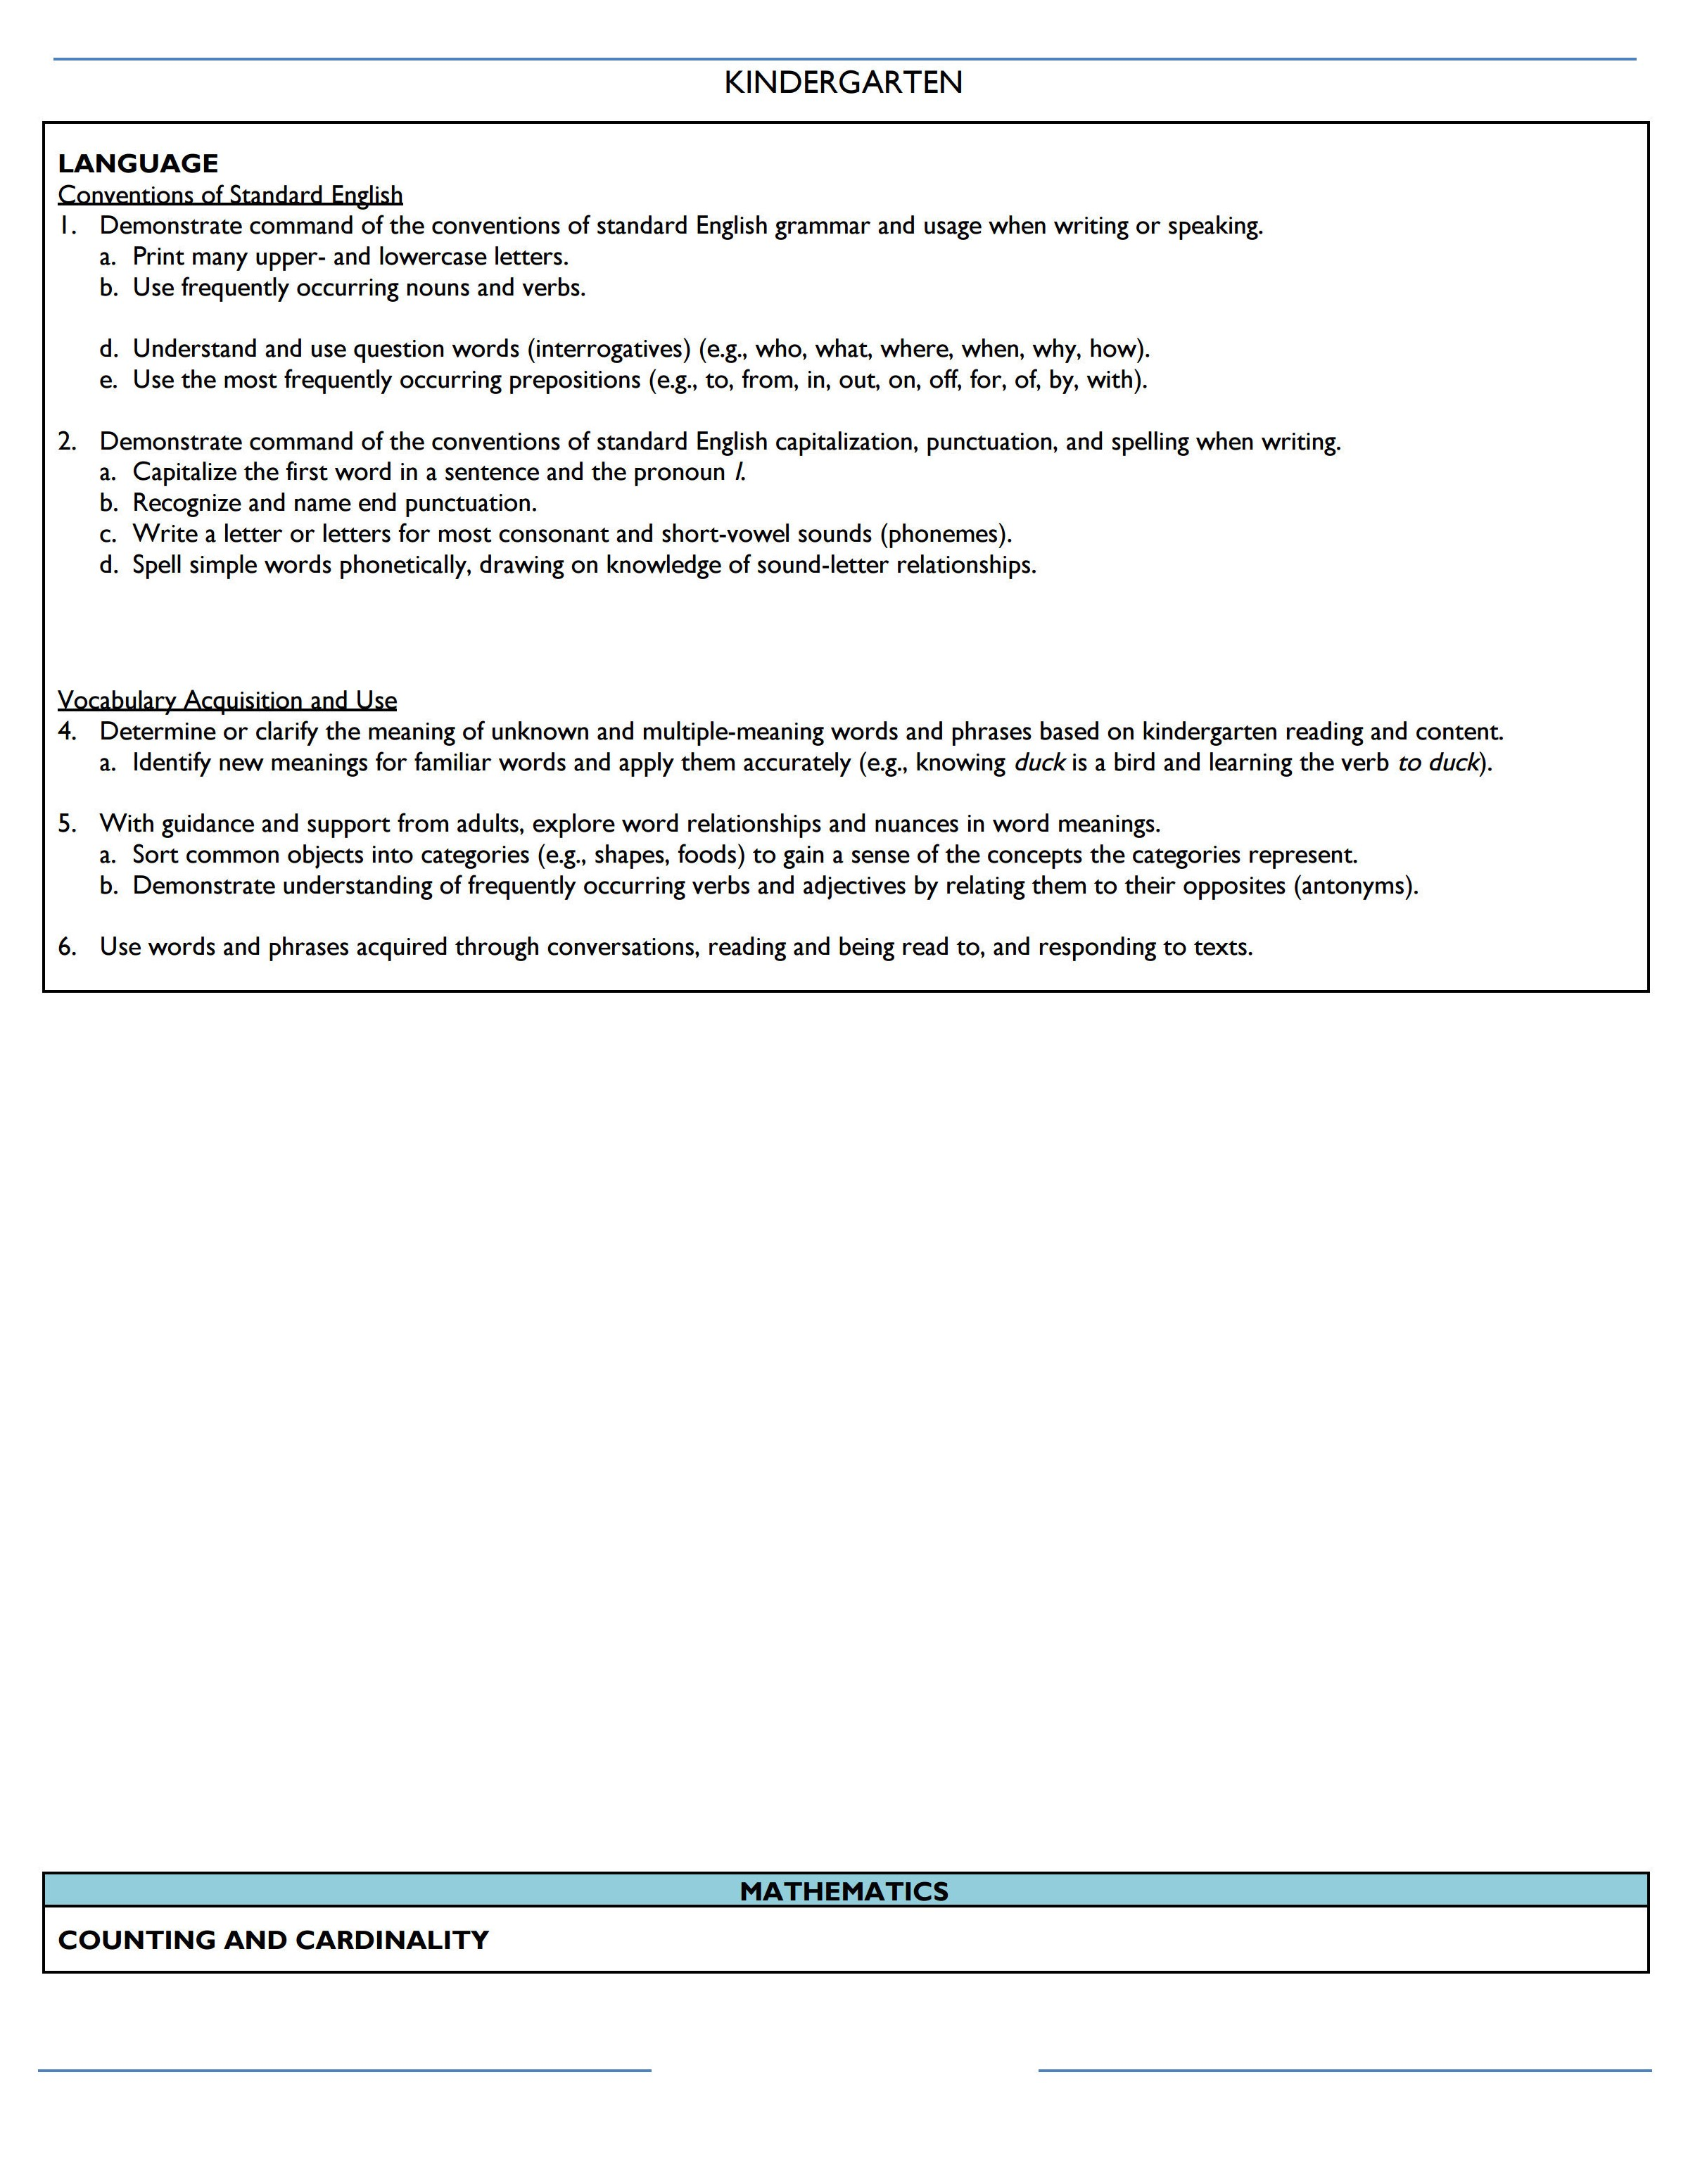 Ms. Amy's Covered TK_K California Standards.doc-3.jpg